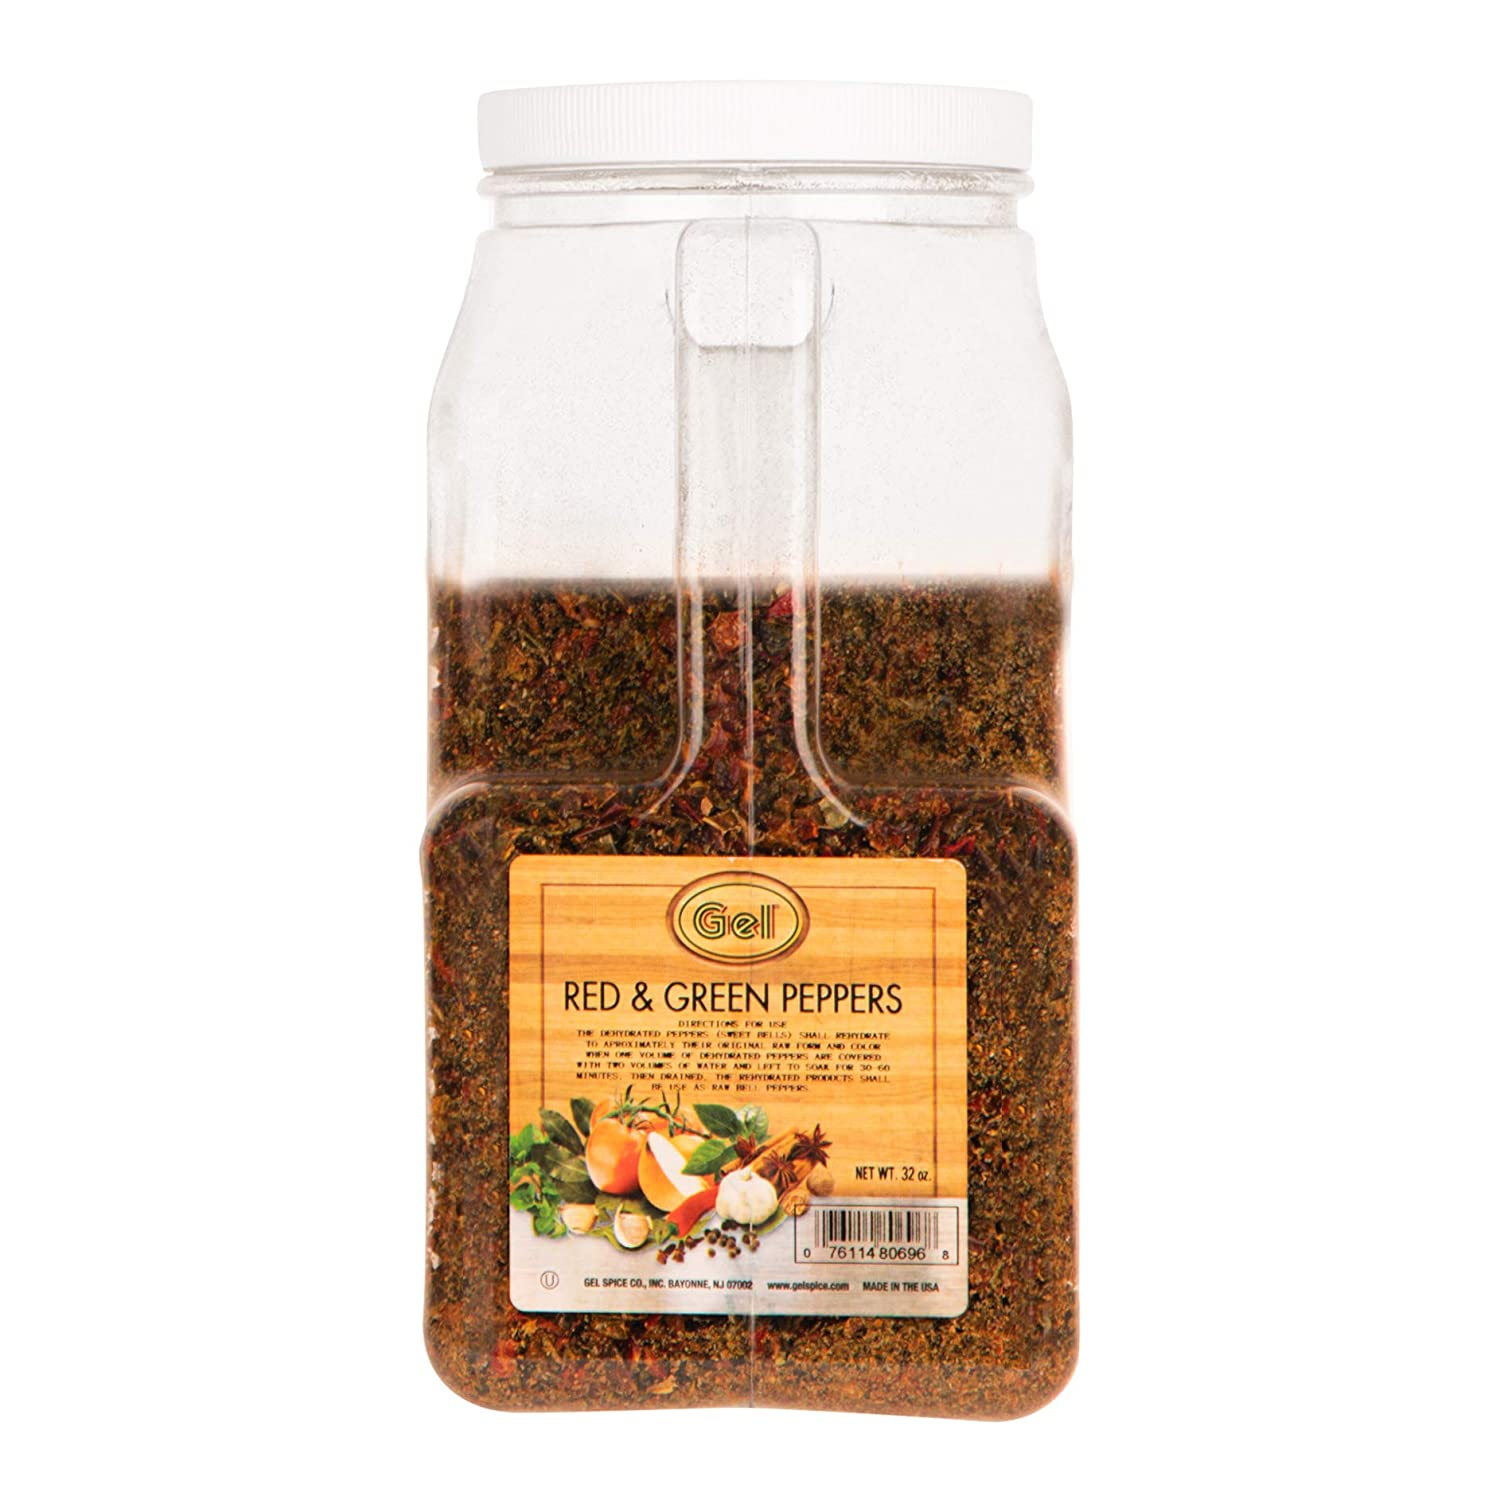 Gel Spice Red and Green Mixed Bell Pepper Flakes – Dehydrated Vegetables for Cooking, Camping,and Emergency Supply - Bulk Size -32 Ounce